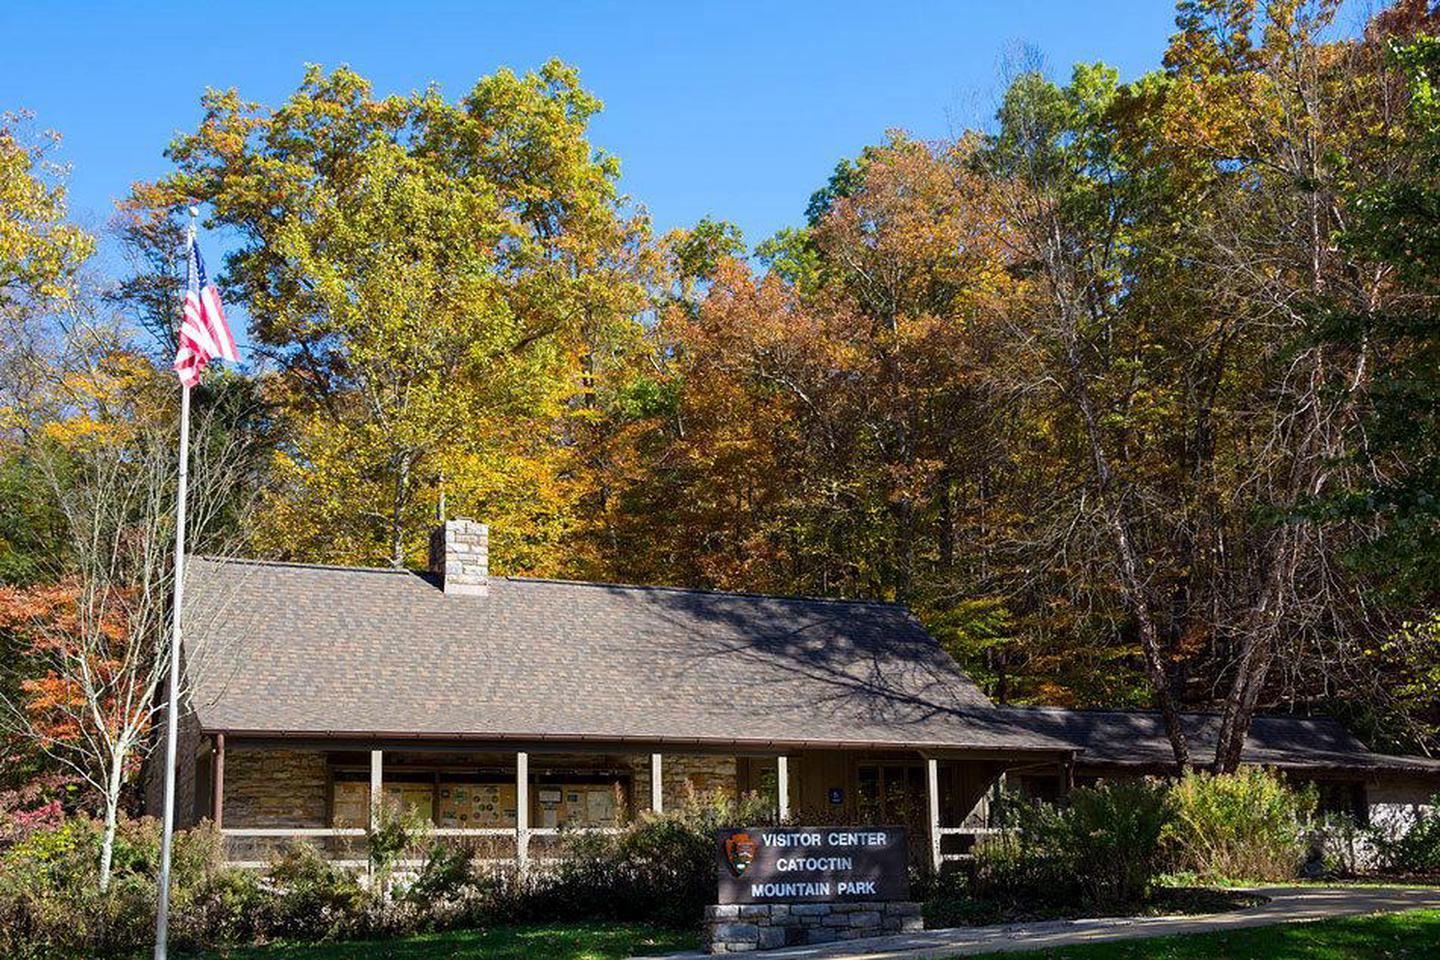 Visitor Center in FallDuring fall, the pollinator garden dies off and the surrounding trees turn every shade of yellow, orange, and red.